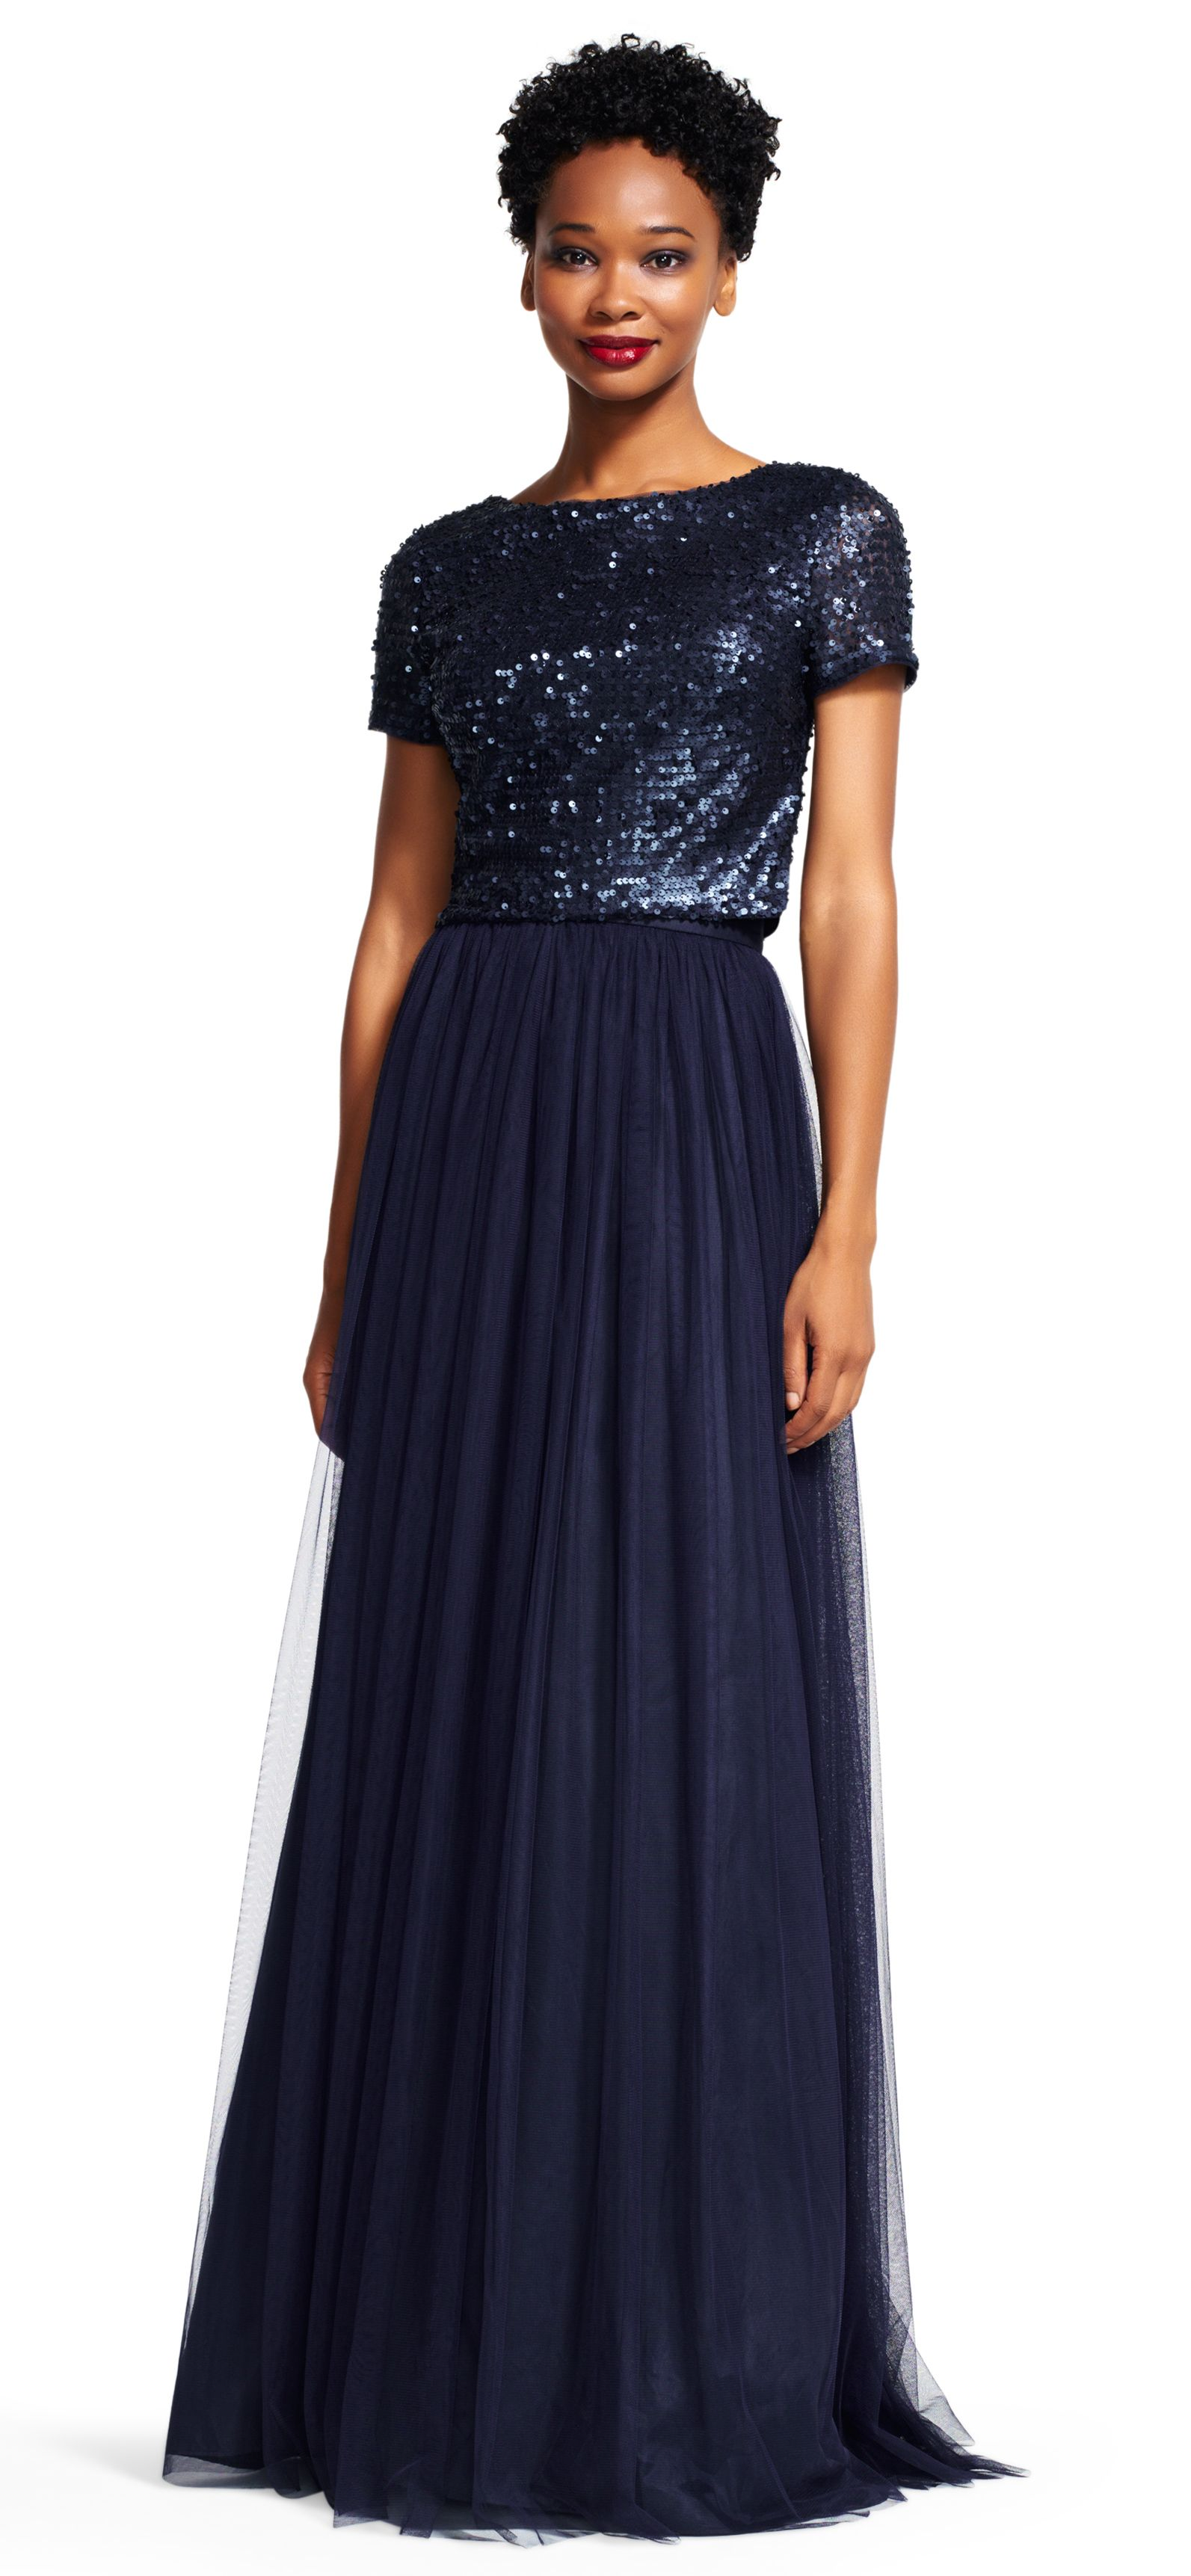 993a526f Adrianna Papell | Short Sleeve Sequin Dress Set with Chiffon Skirt | The  perfect amount of glamour is easily attained in this formal gown set.